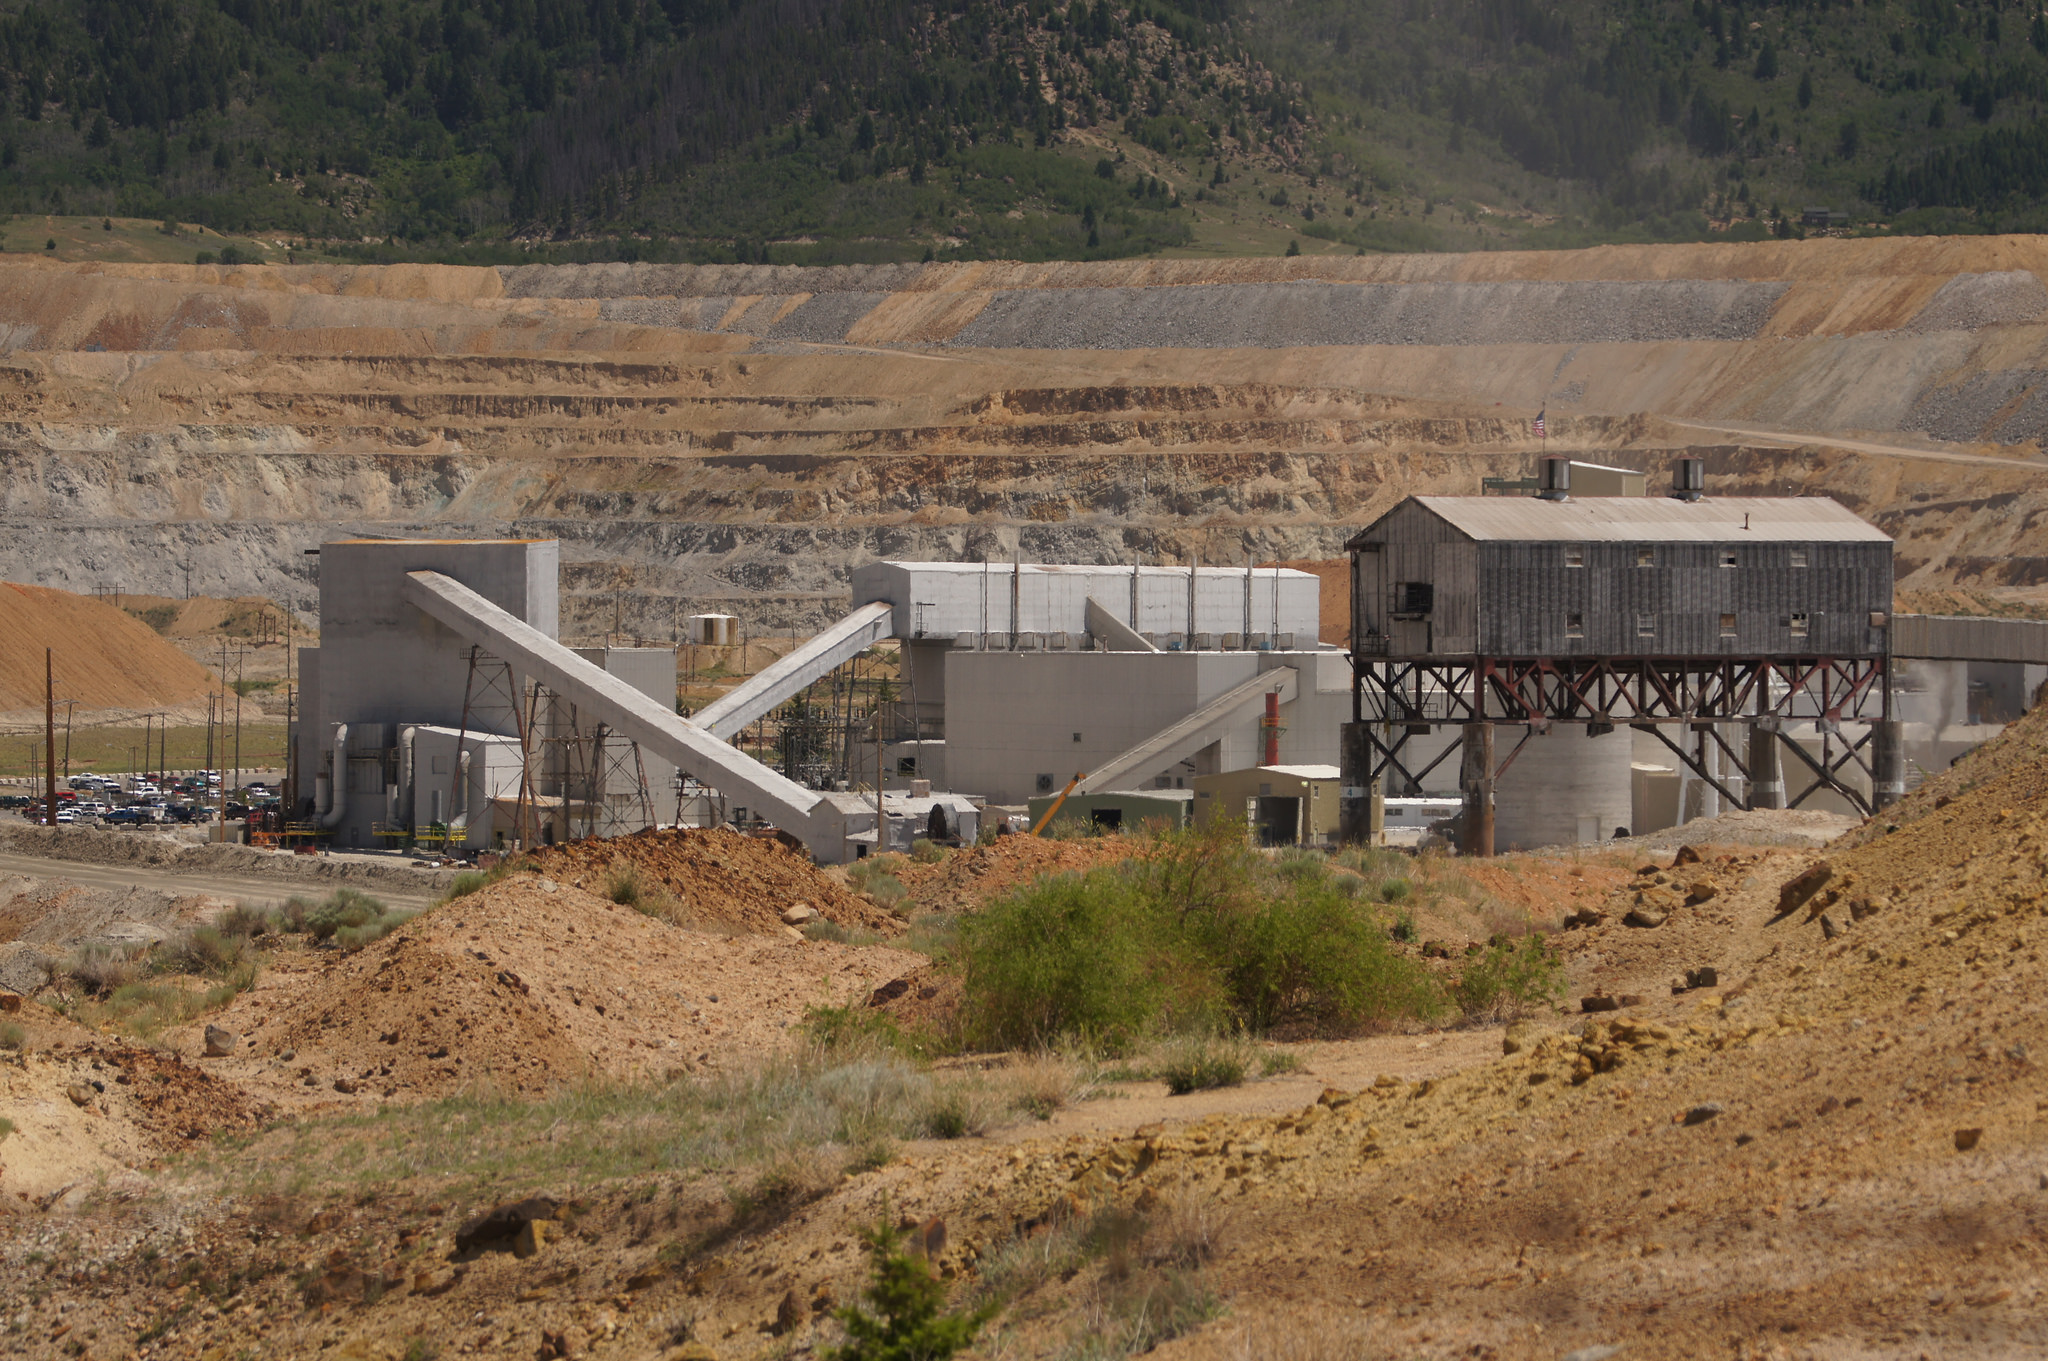 Berkeley Pit open-pit copper mine in Butte, Montana